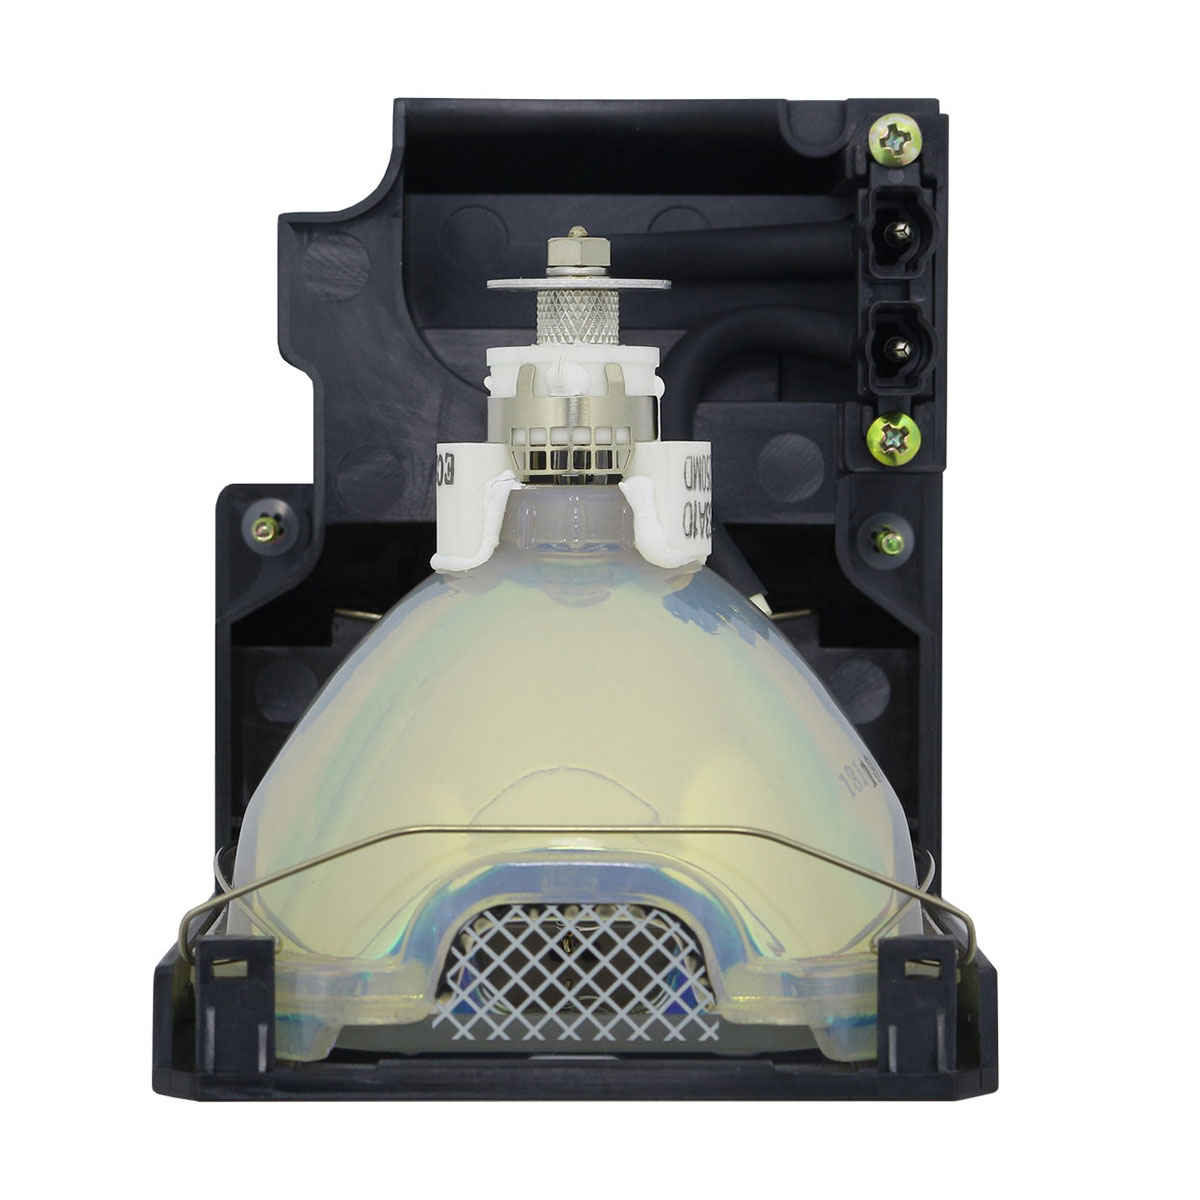 Original Ushio Projector Lamp Replacement for Yokogawa VLT-X400LP (Bulb Only) - image 3 of 5